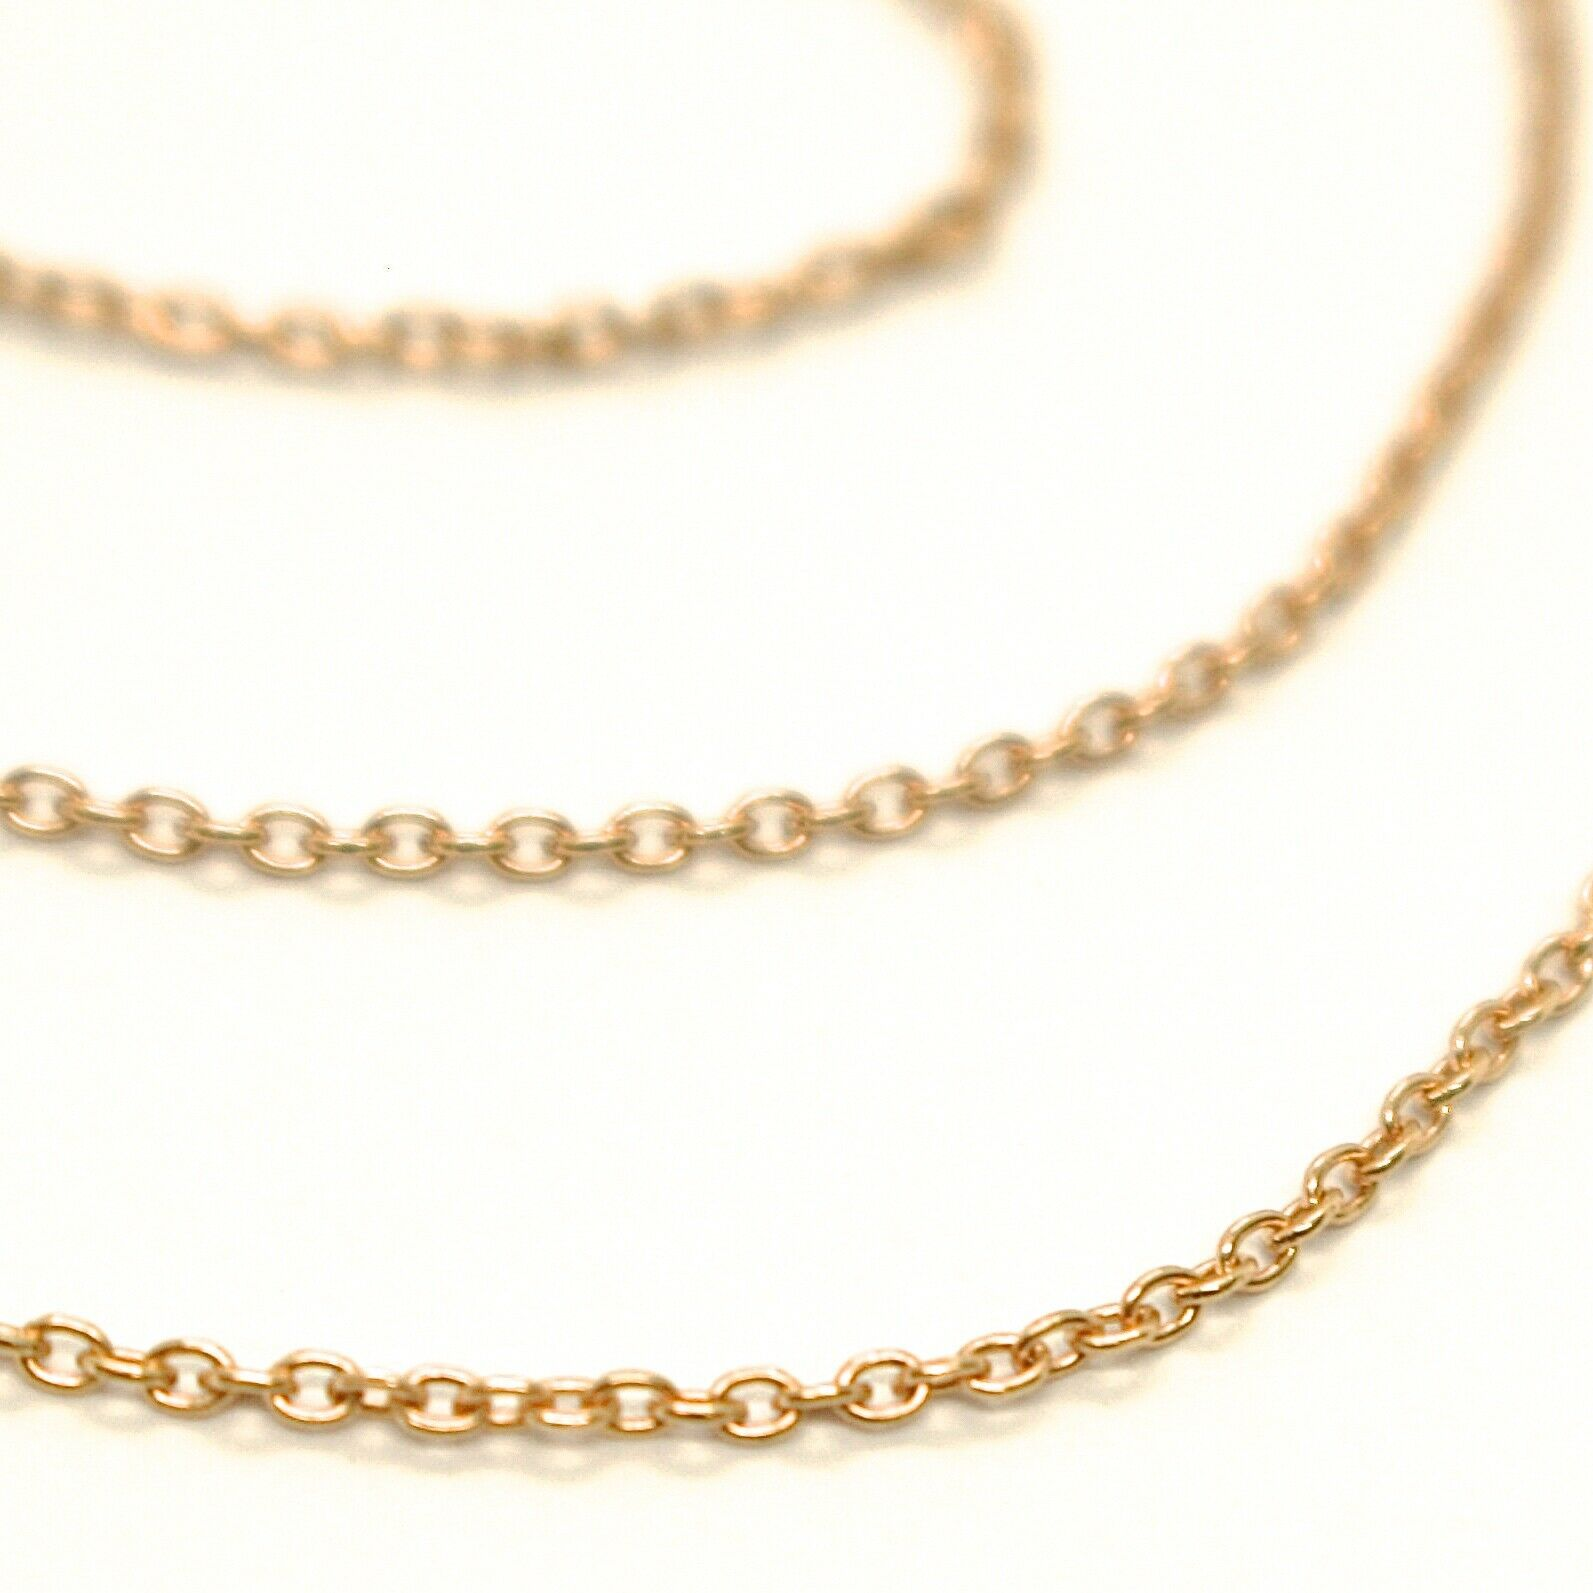 Mini Gold Chain Yellow 750 18K,40 45 or 50 cm,Jersey Rolo ' ,Rim Diameter 1 MM